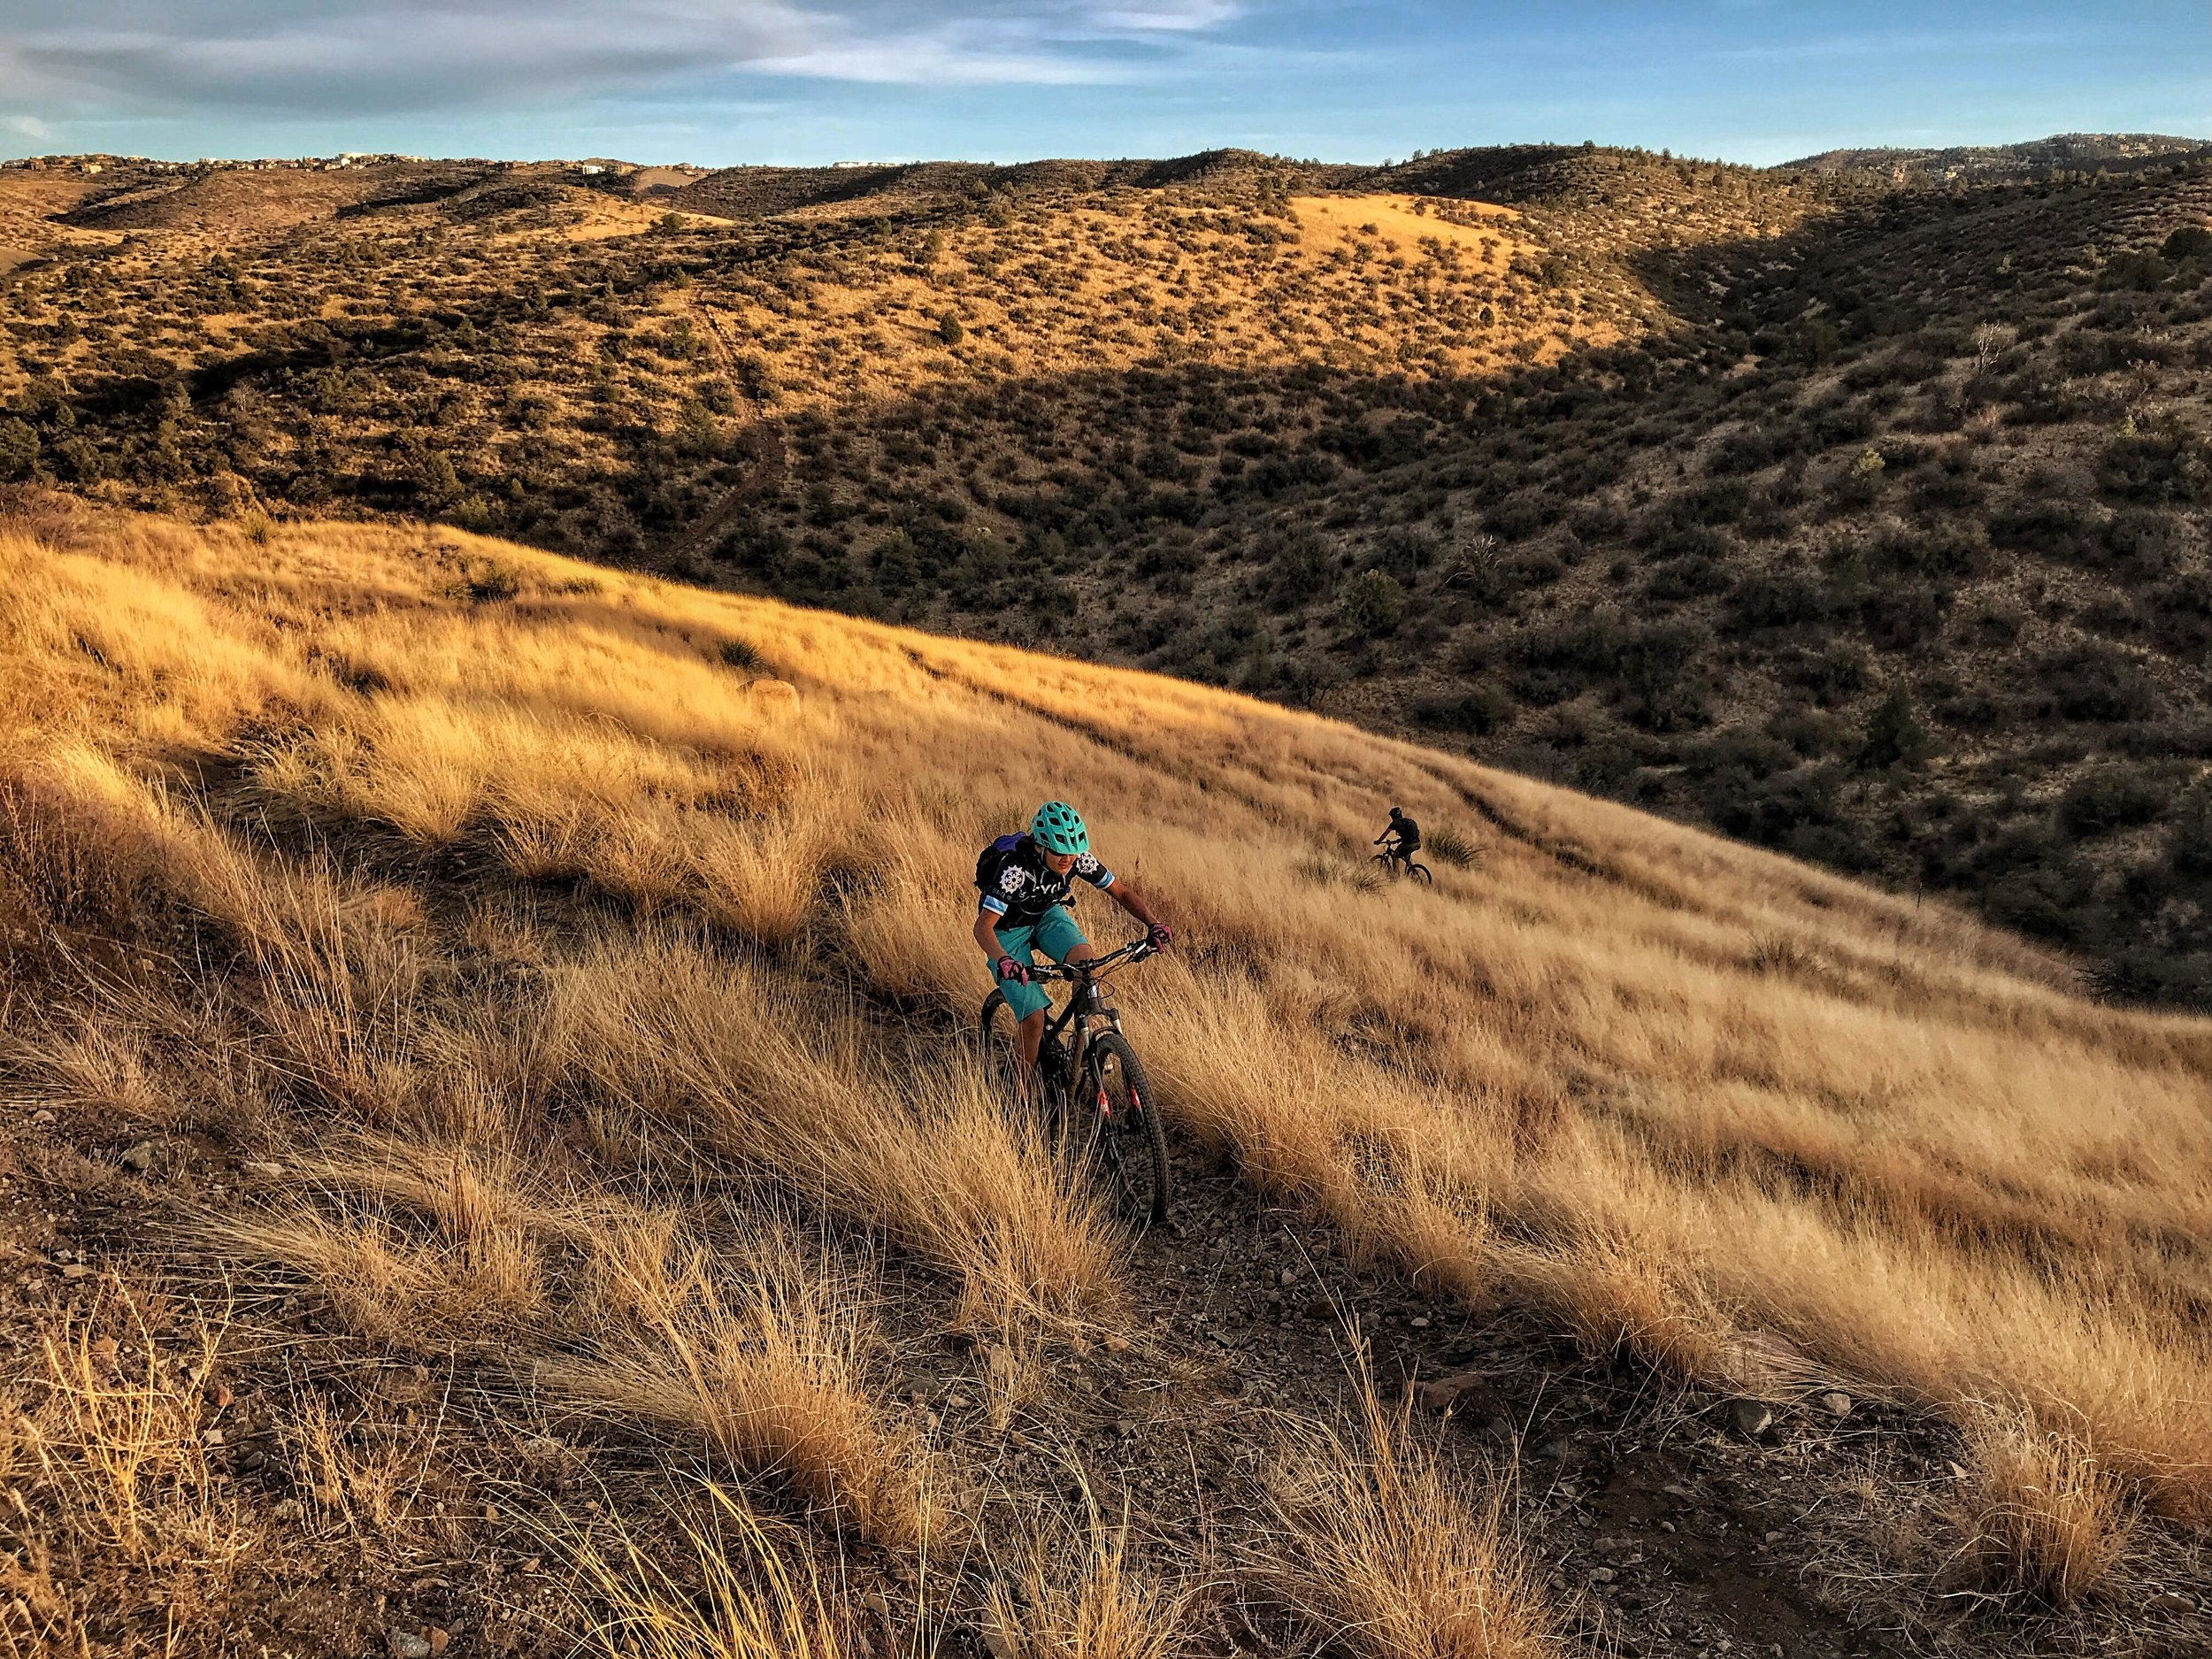 Riding the Sundog Trail. Photo by Jason Liske.